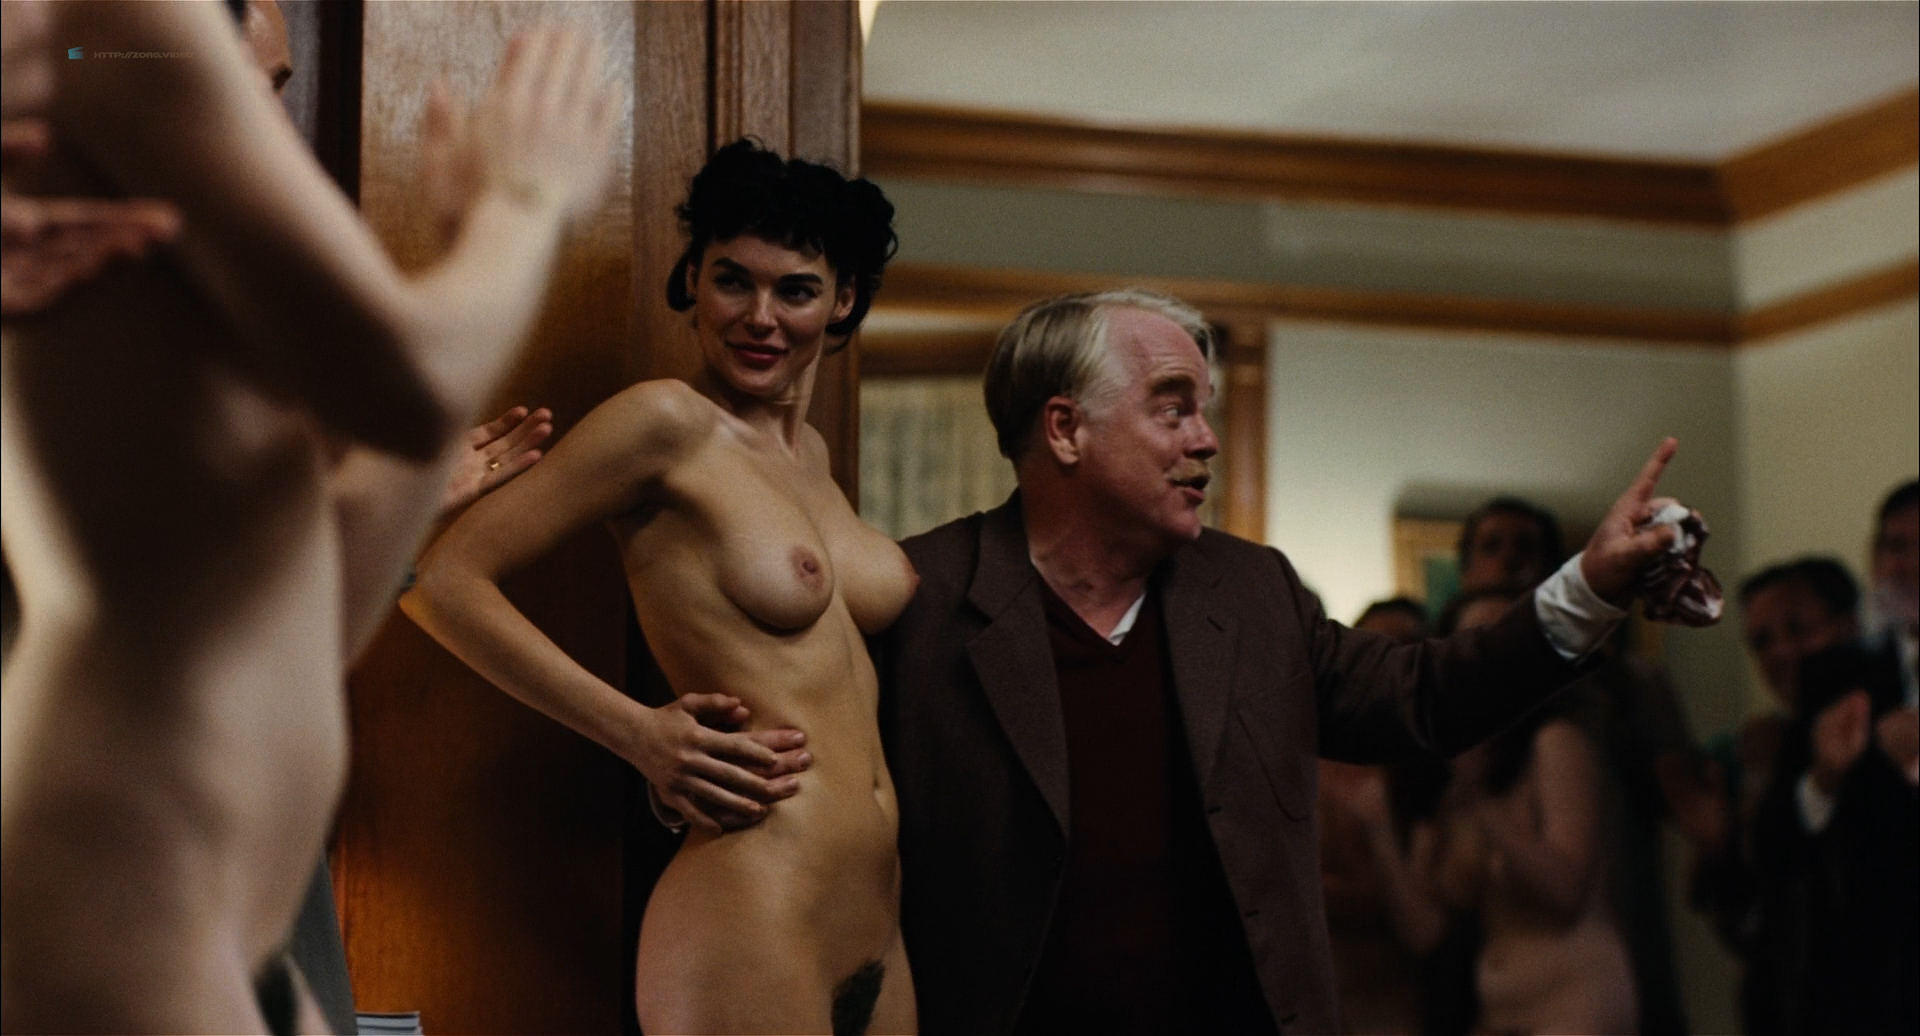 Amy Ferguson nude topless, Liz Clare, Katie Boland nude dancing Amy Adams nude covered and Jennifer Neala Page nude sex - The Master (2012) HD 1080p BluRay (17)